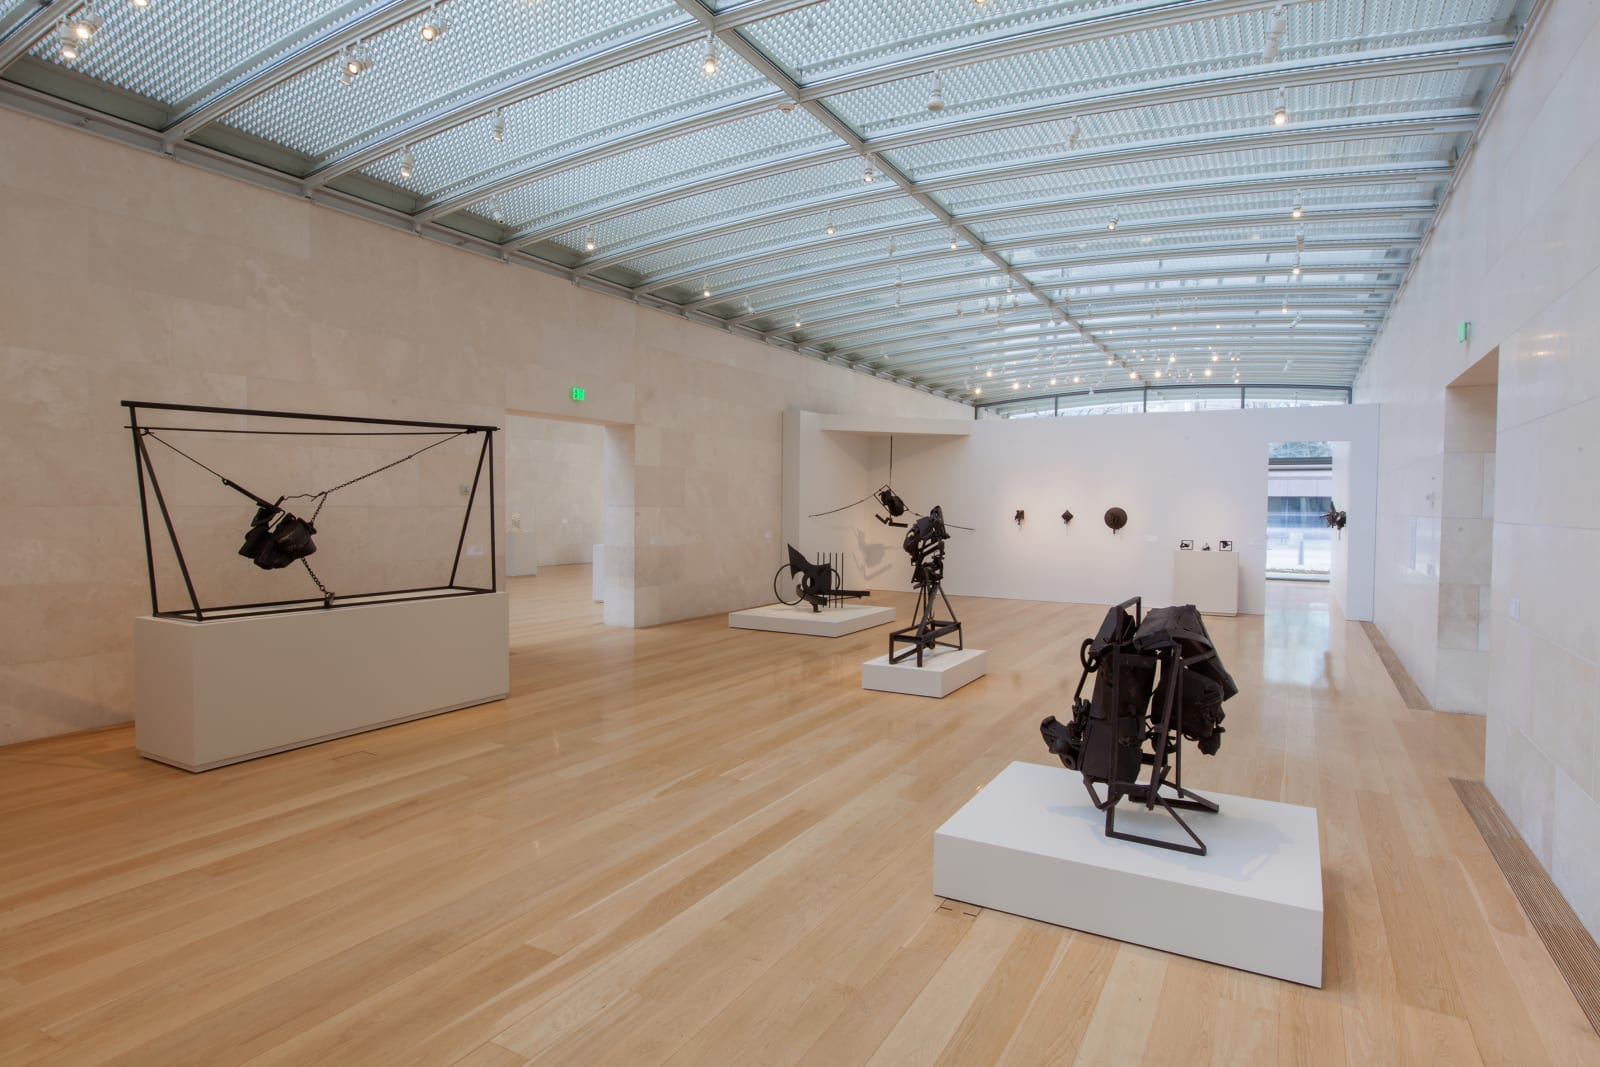 <p>Installation view: 'Melvin Edwards: Five Decades', Nasher Sculpture Center, Dallas, Texas (2015)</p>